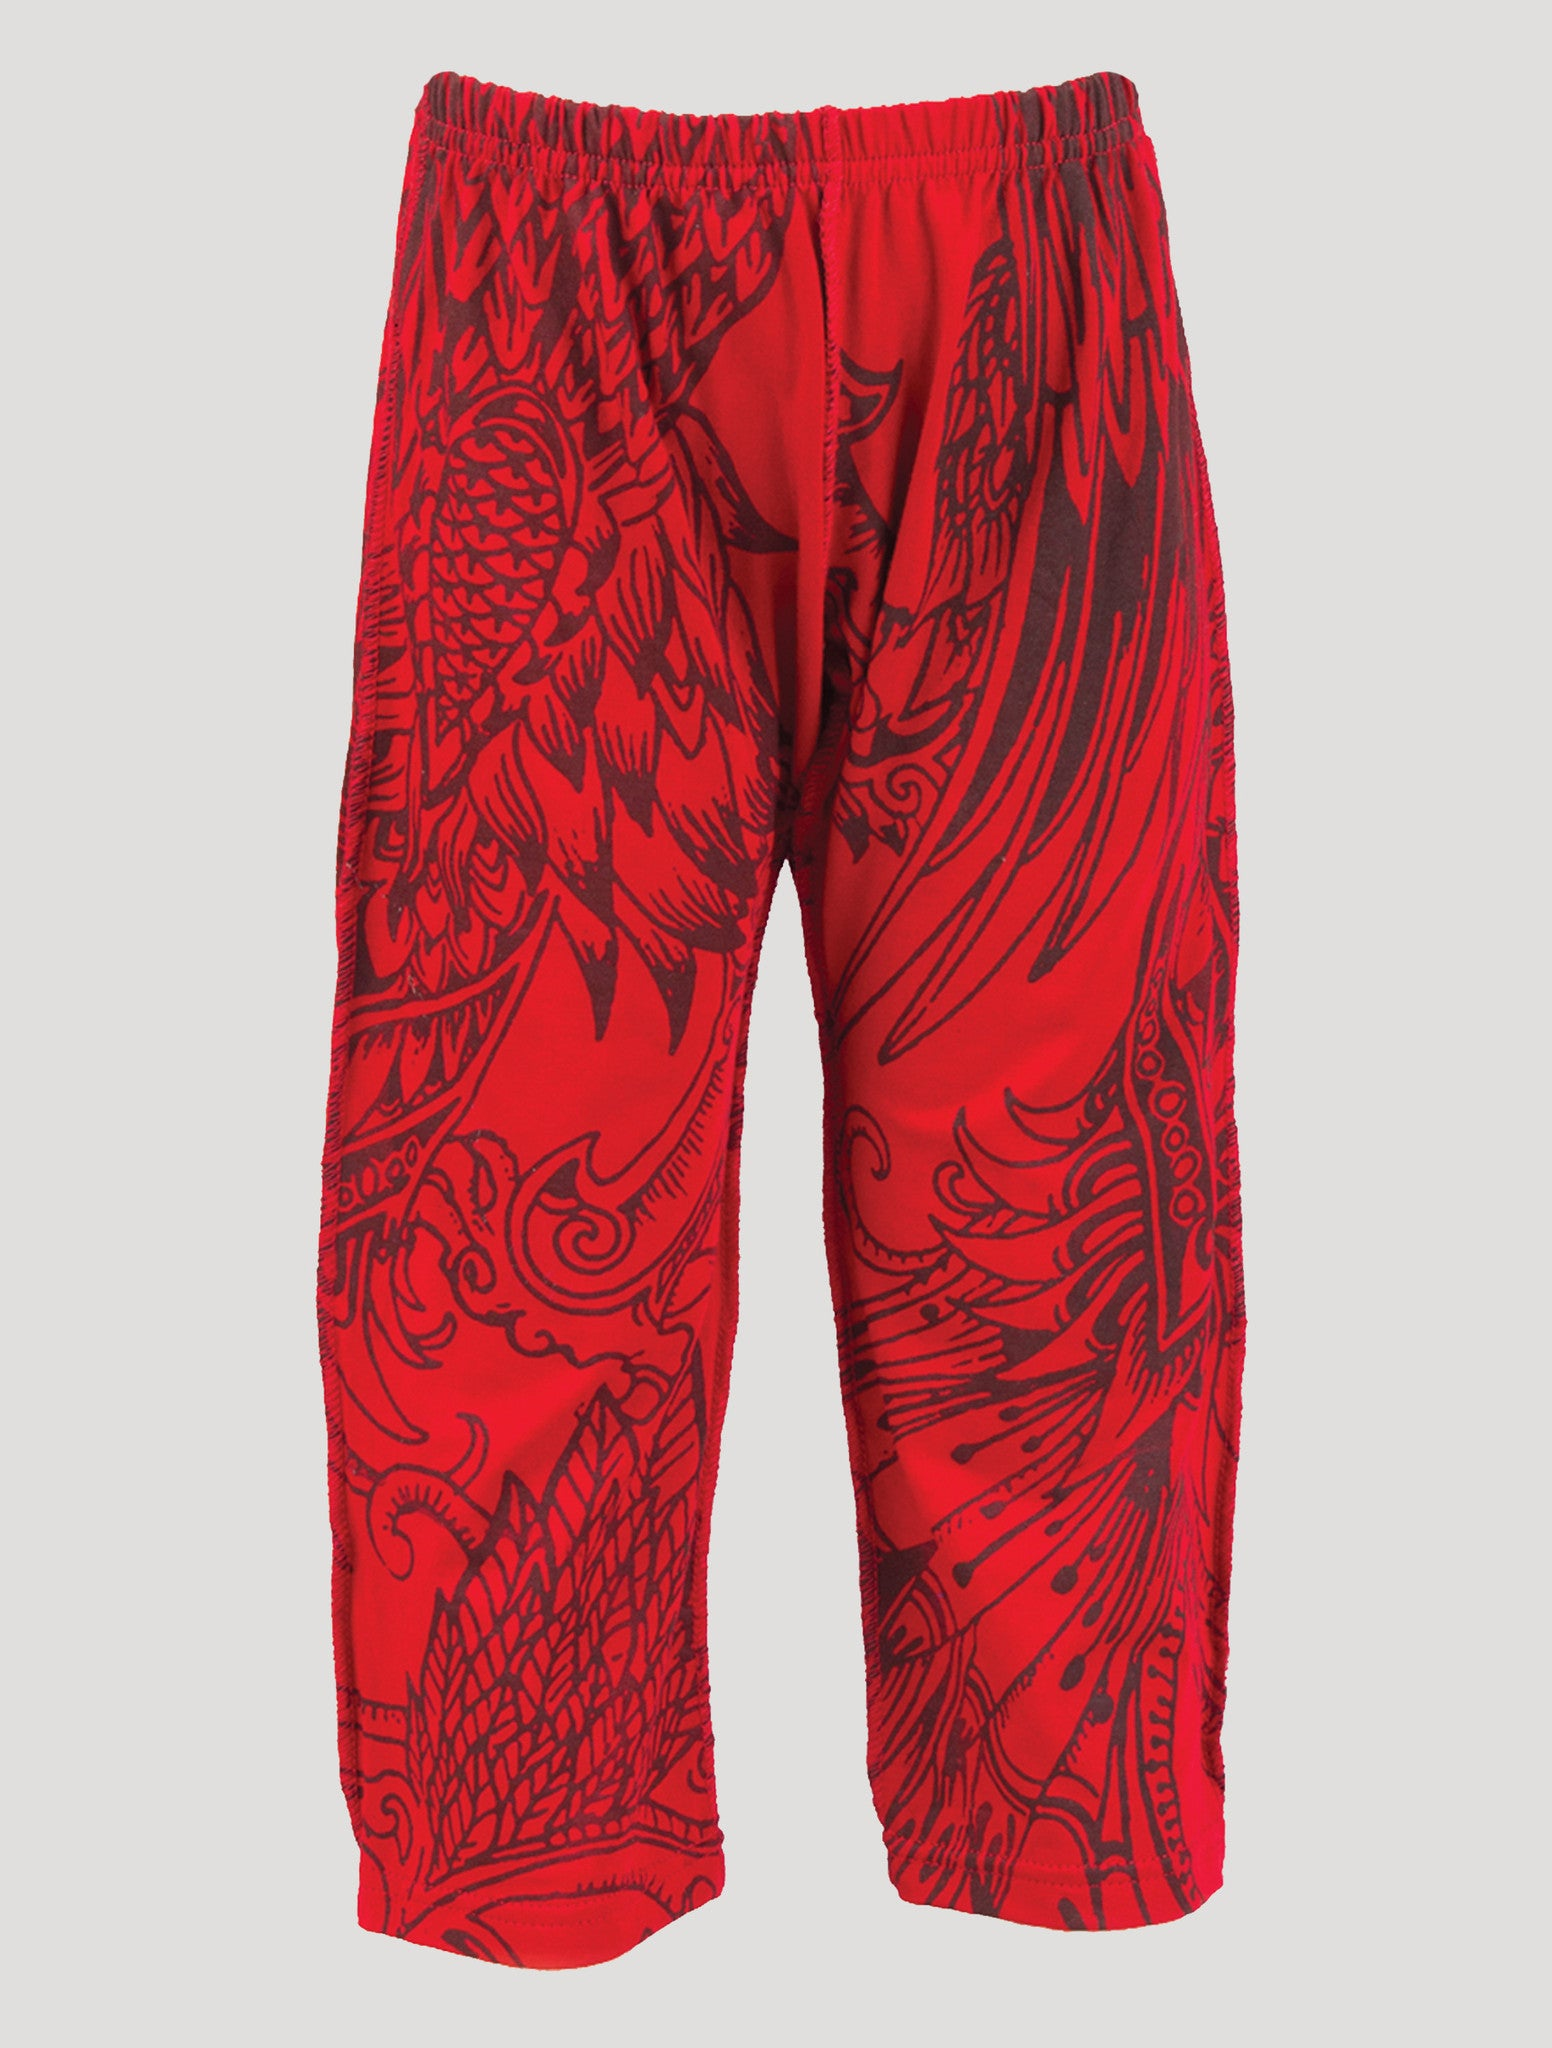 Garuda Pants (Kids)